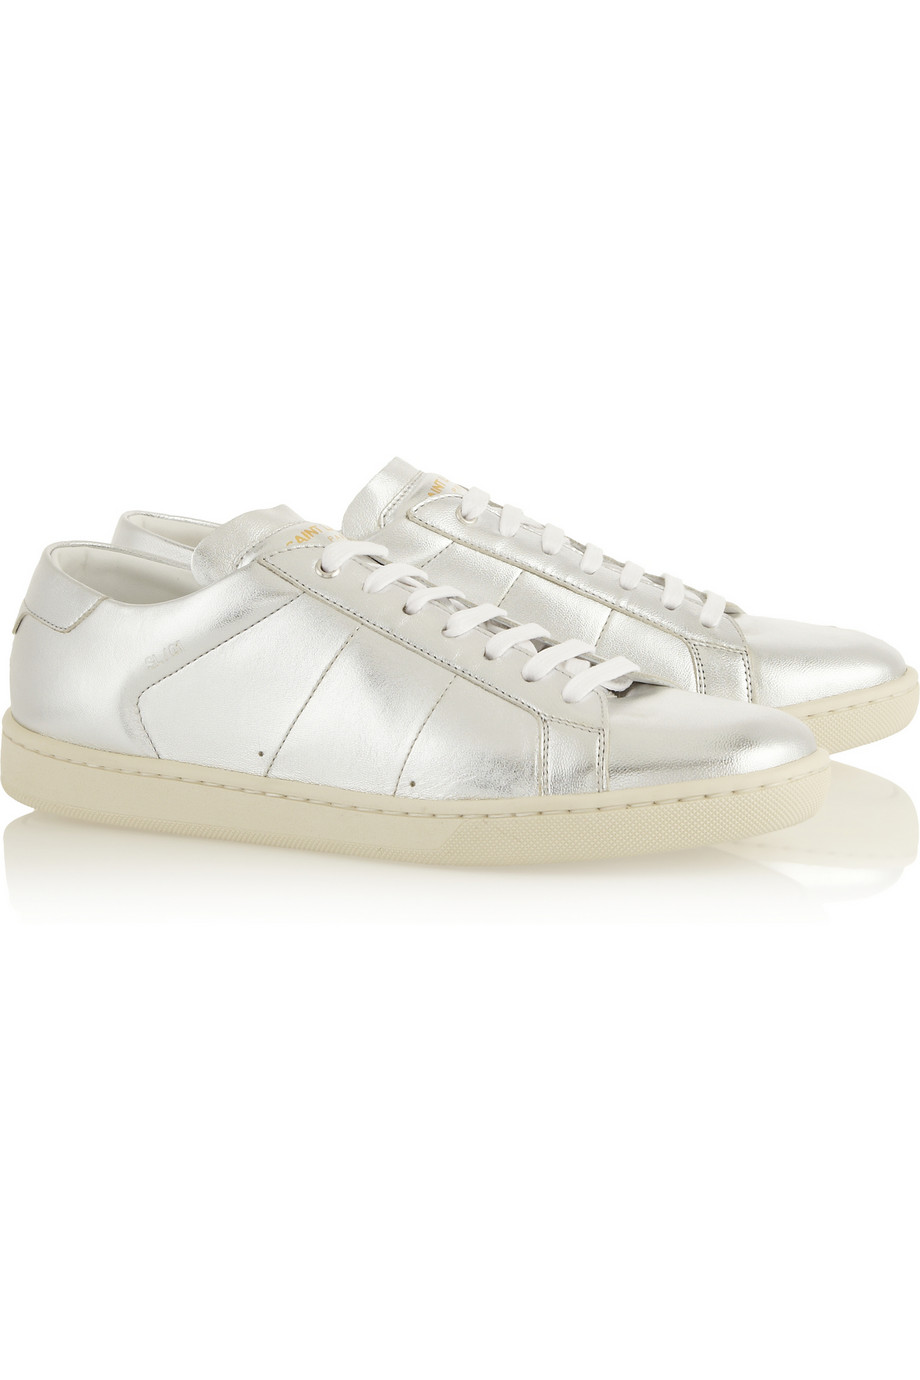 SAINT LAURENT Metallic leather sneakers